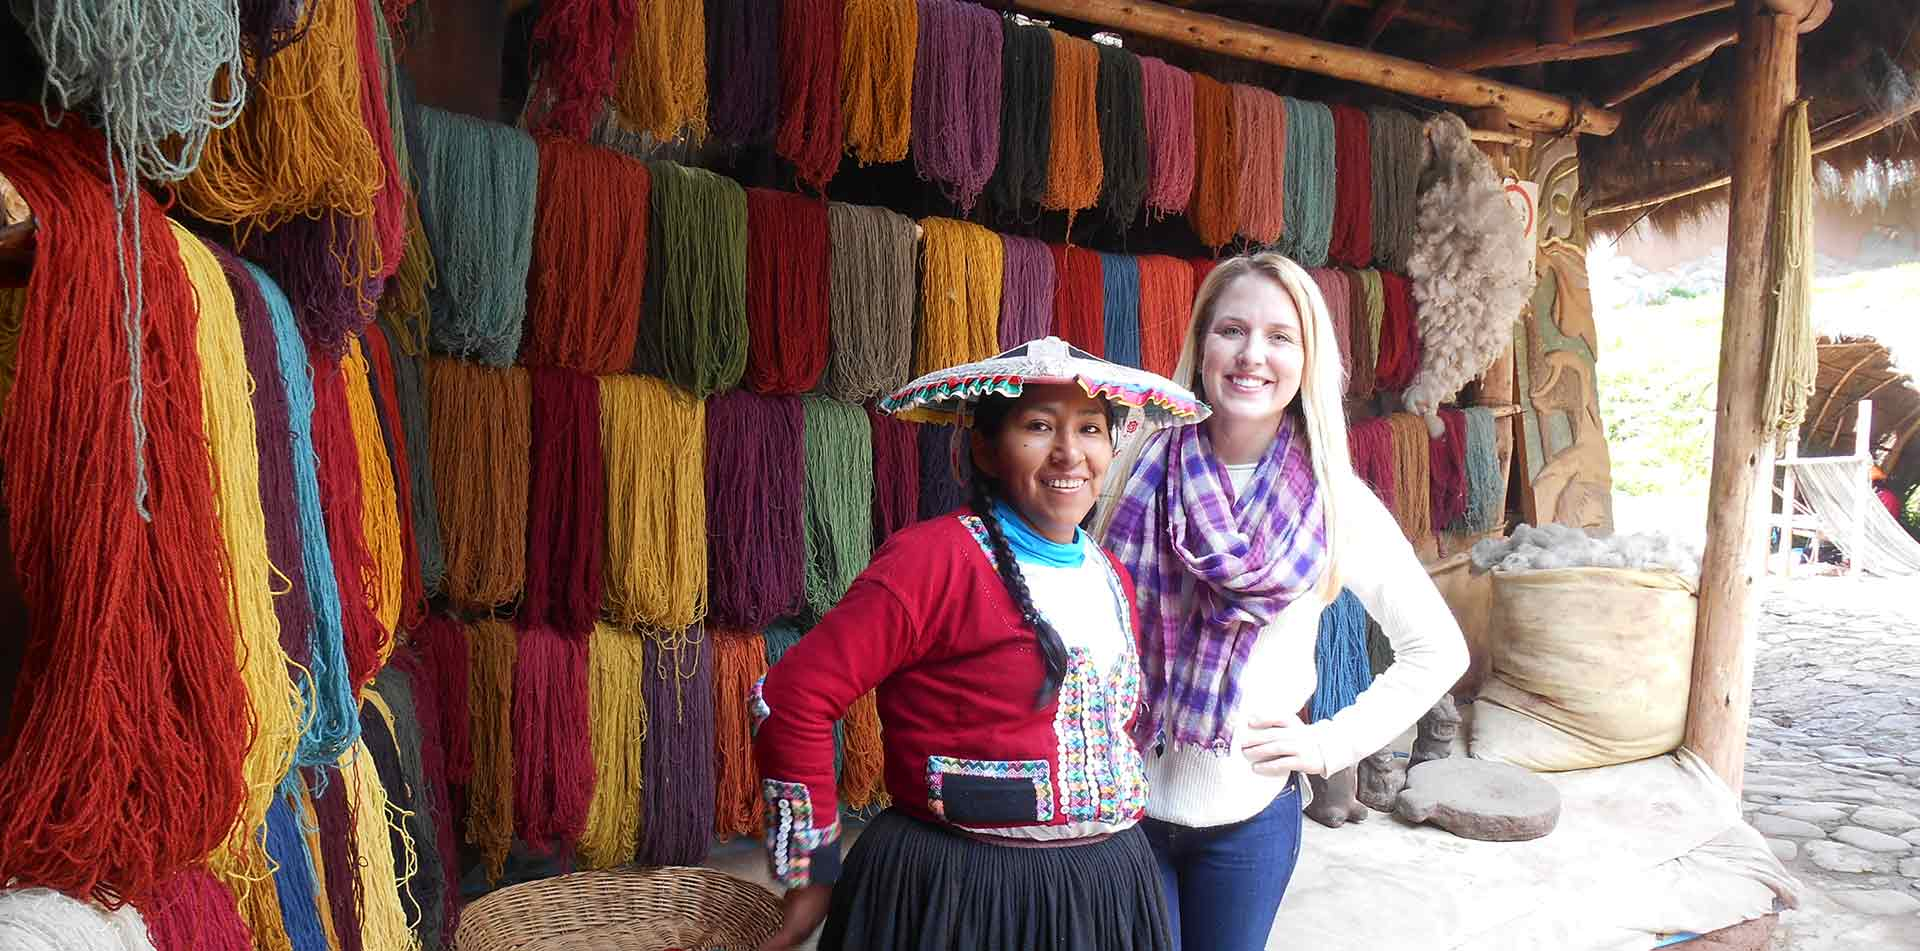 South America Peru Quechua local and young woman smiling posing in front of colorful yarn - luxury vacation destinations